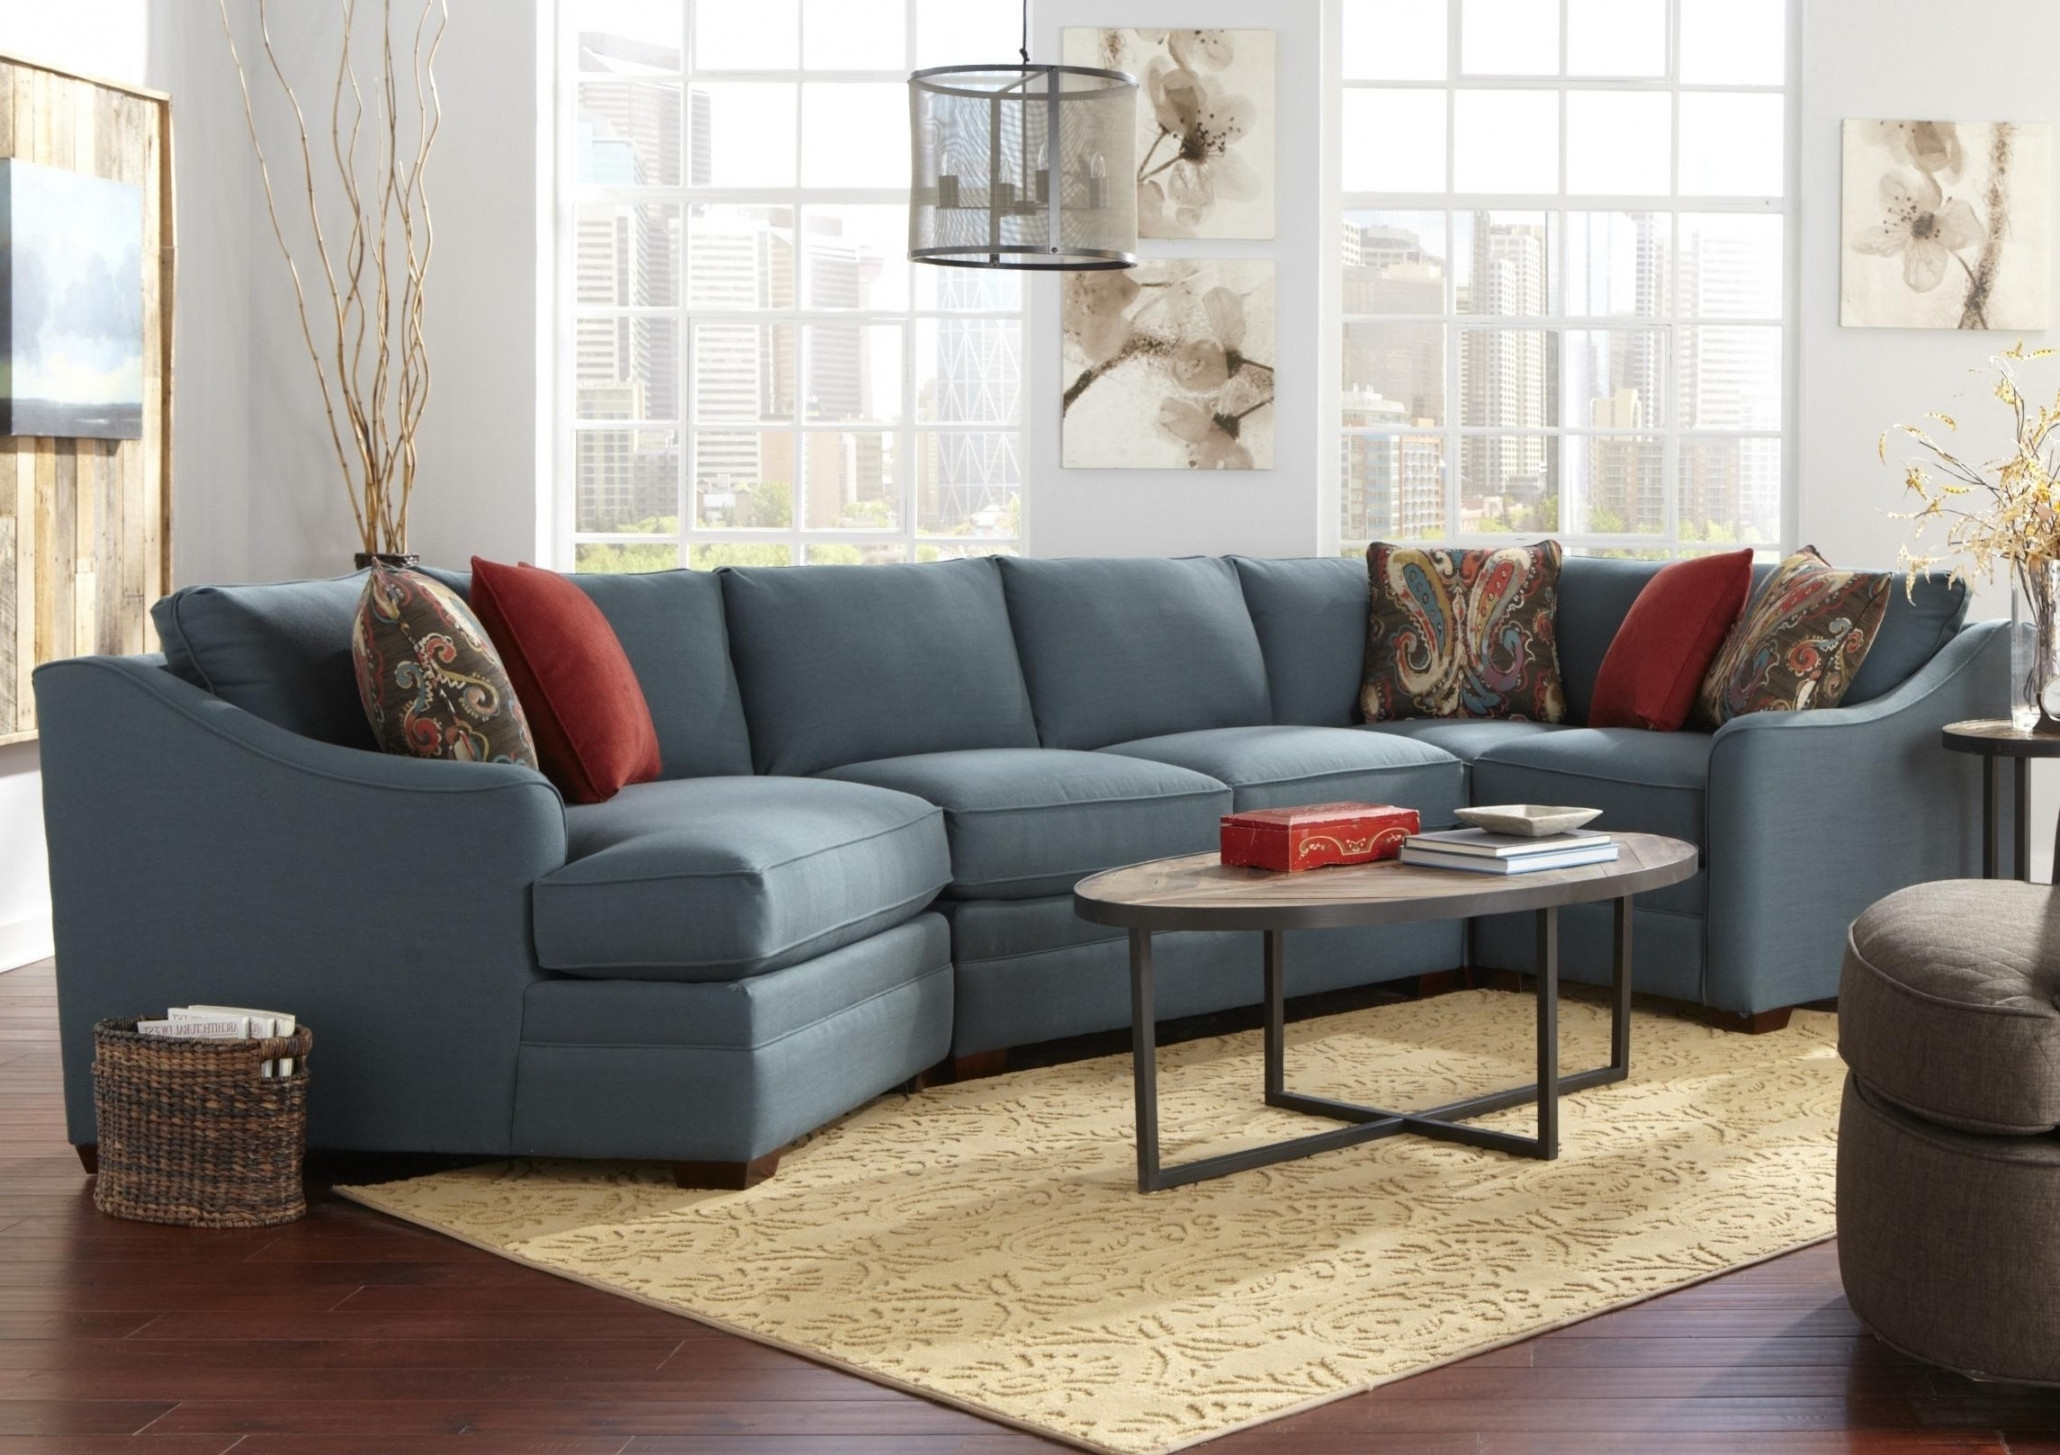 Elegant Sectional Sofa Under 200 – Buildsimplehome | House With Sectional Sofas Under (View 8 of 10)